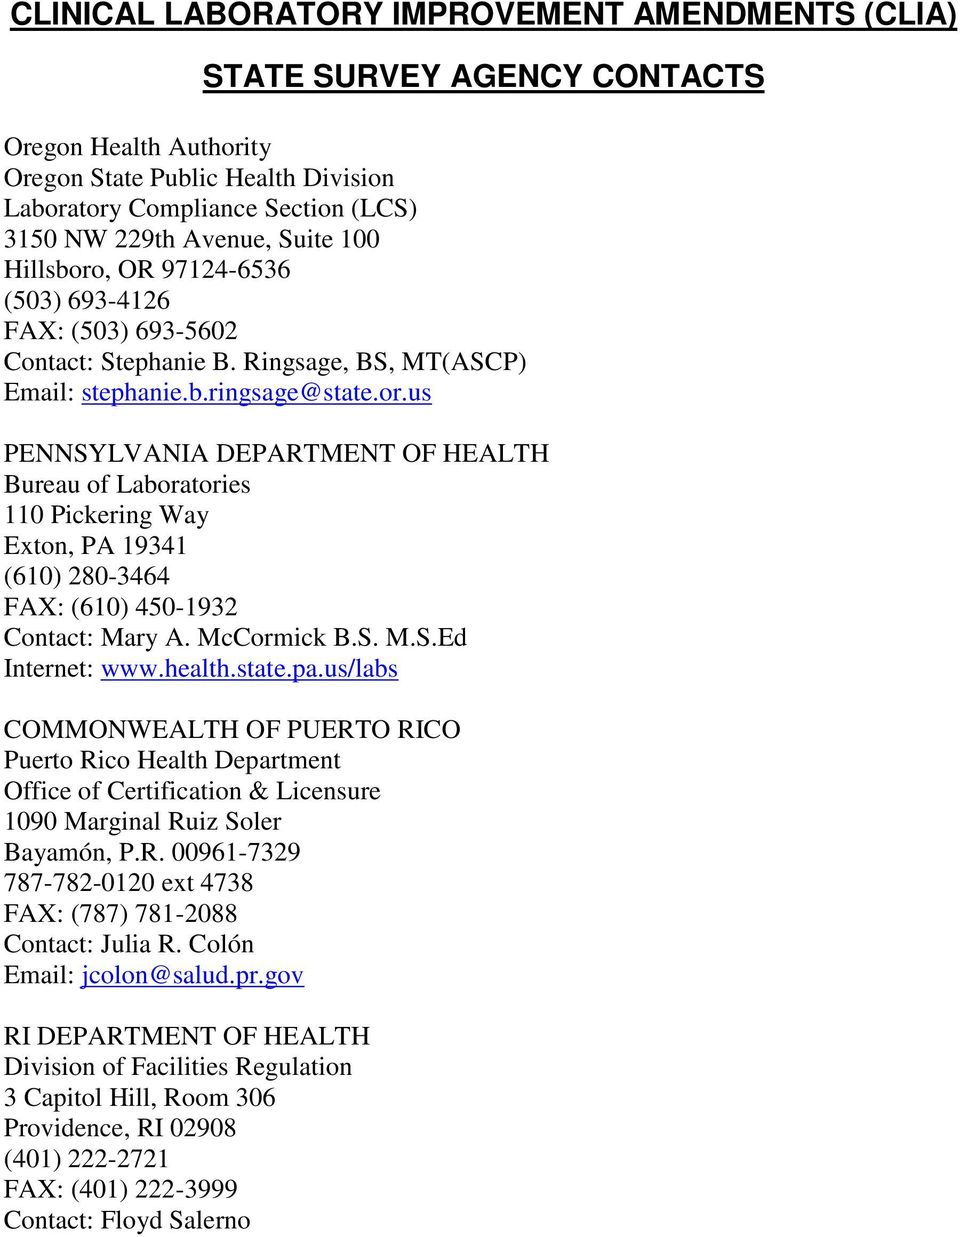 us PENNSYLVANIA DEPARTMENT OF HEALTH Bureau of Laboratories 110 Pickering Way Exton, PA 19341 (610) 280-3464 FAX: (610) 450-1932 Contact: Mary A. McCormick B.S. M.S.Ed Internet: www.health.state.pa.